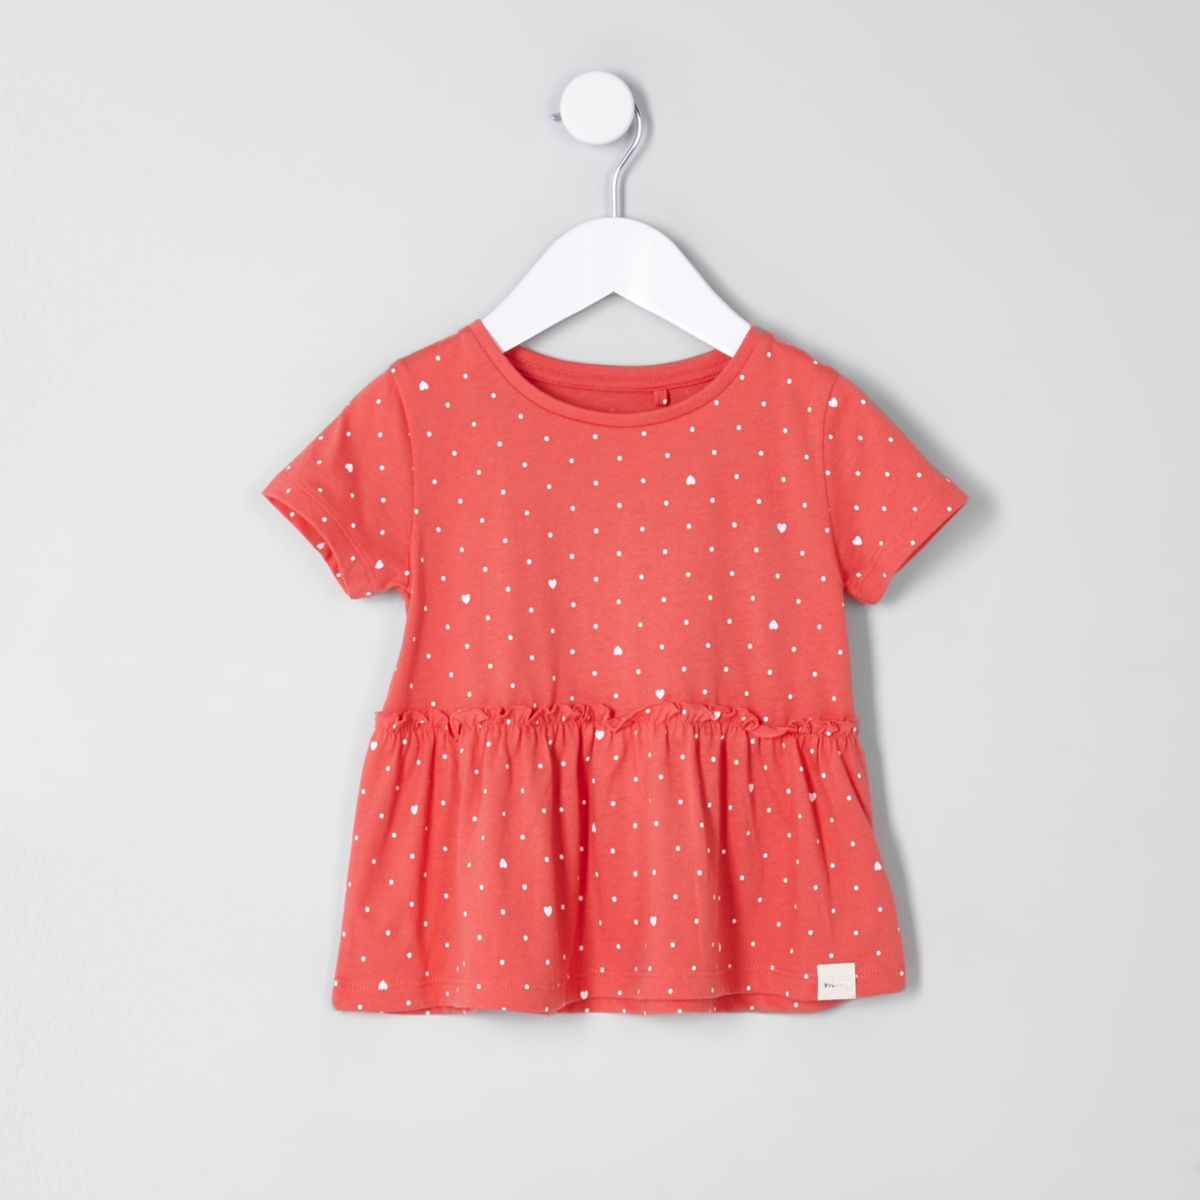 Mini girls red polka dot peplum hem T-shirt